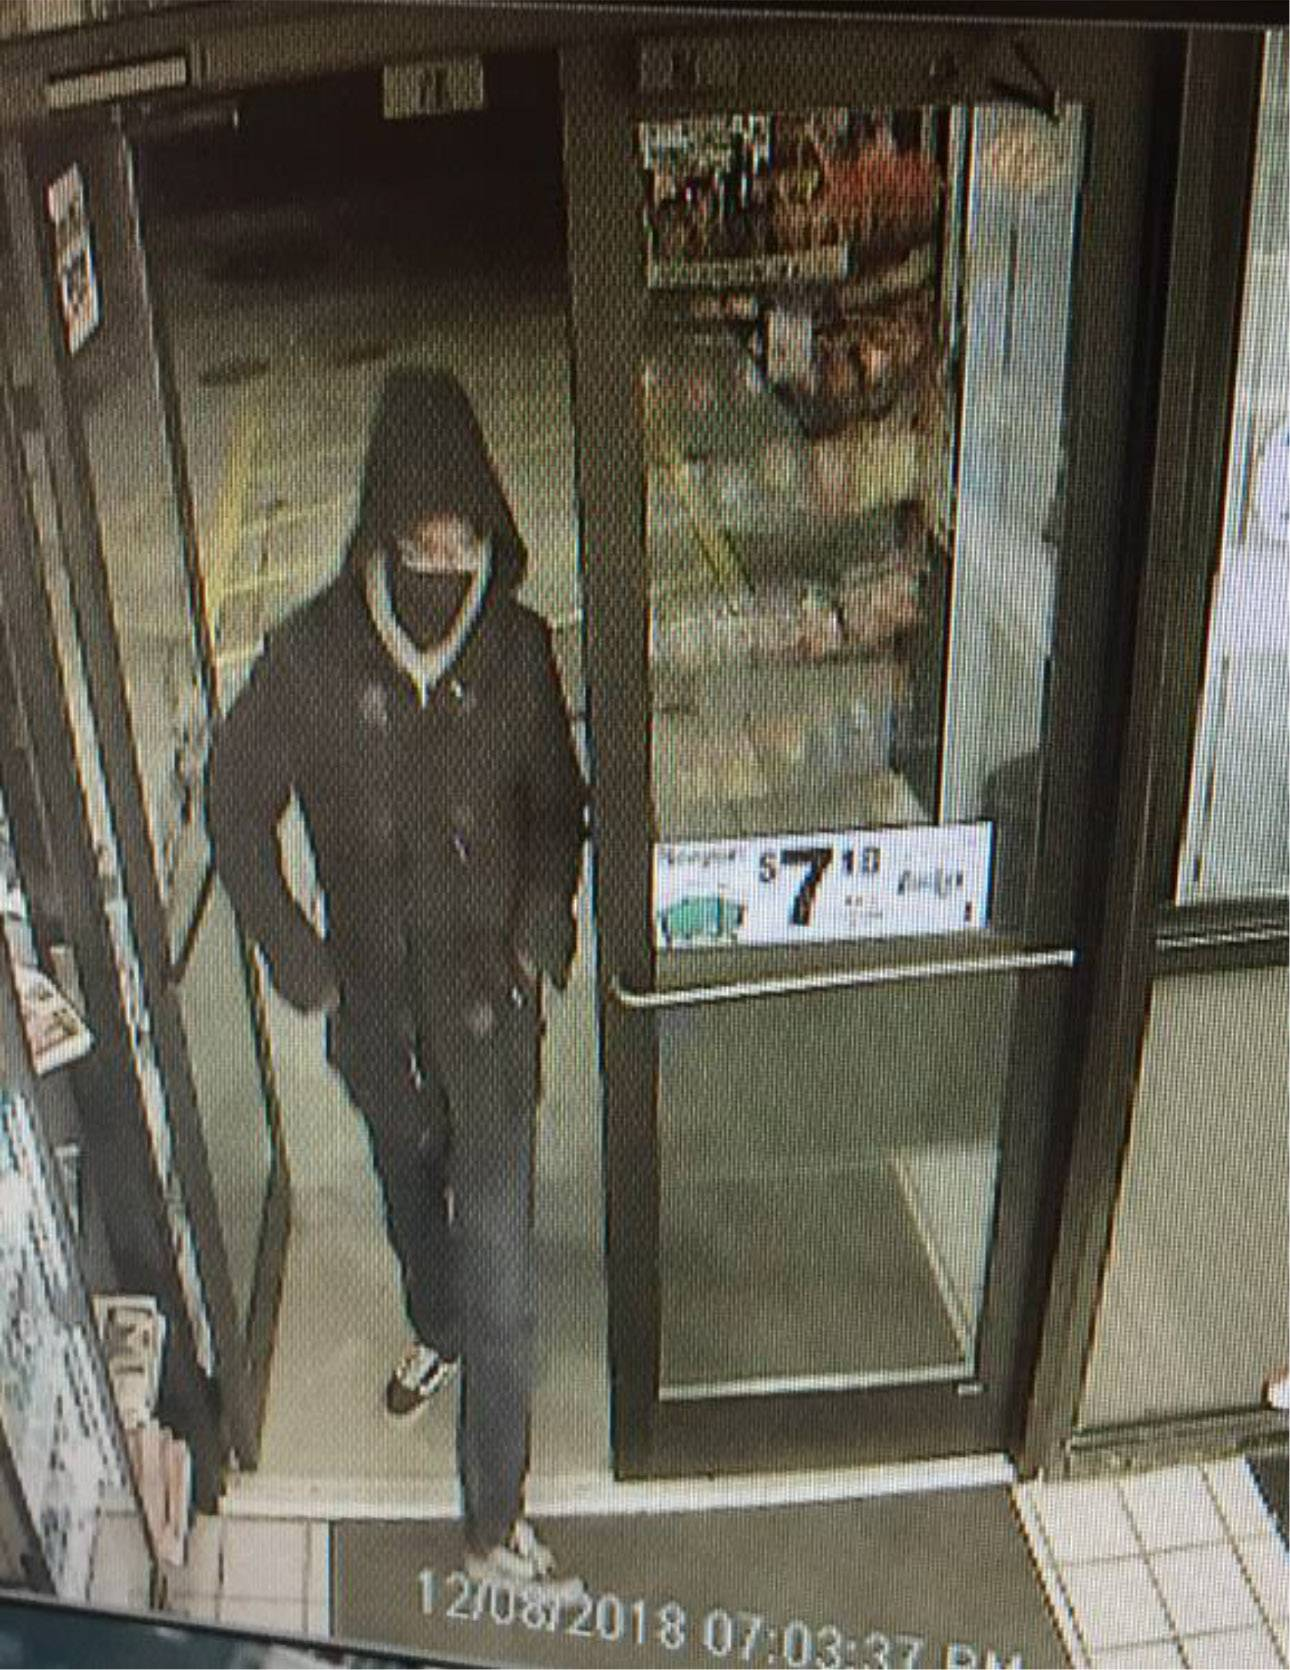 Downers Grove police say a male robber wearing a mask showed a gun and demanded cash at the Bucky's Express at 2181 63rd St. The thief entered the store Dec. 8 just before closing, police said.